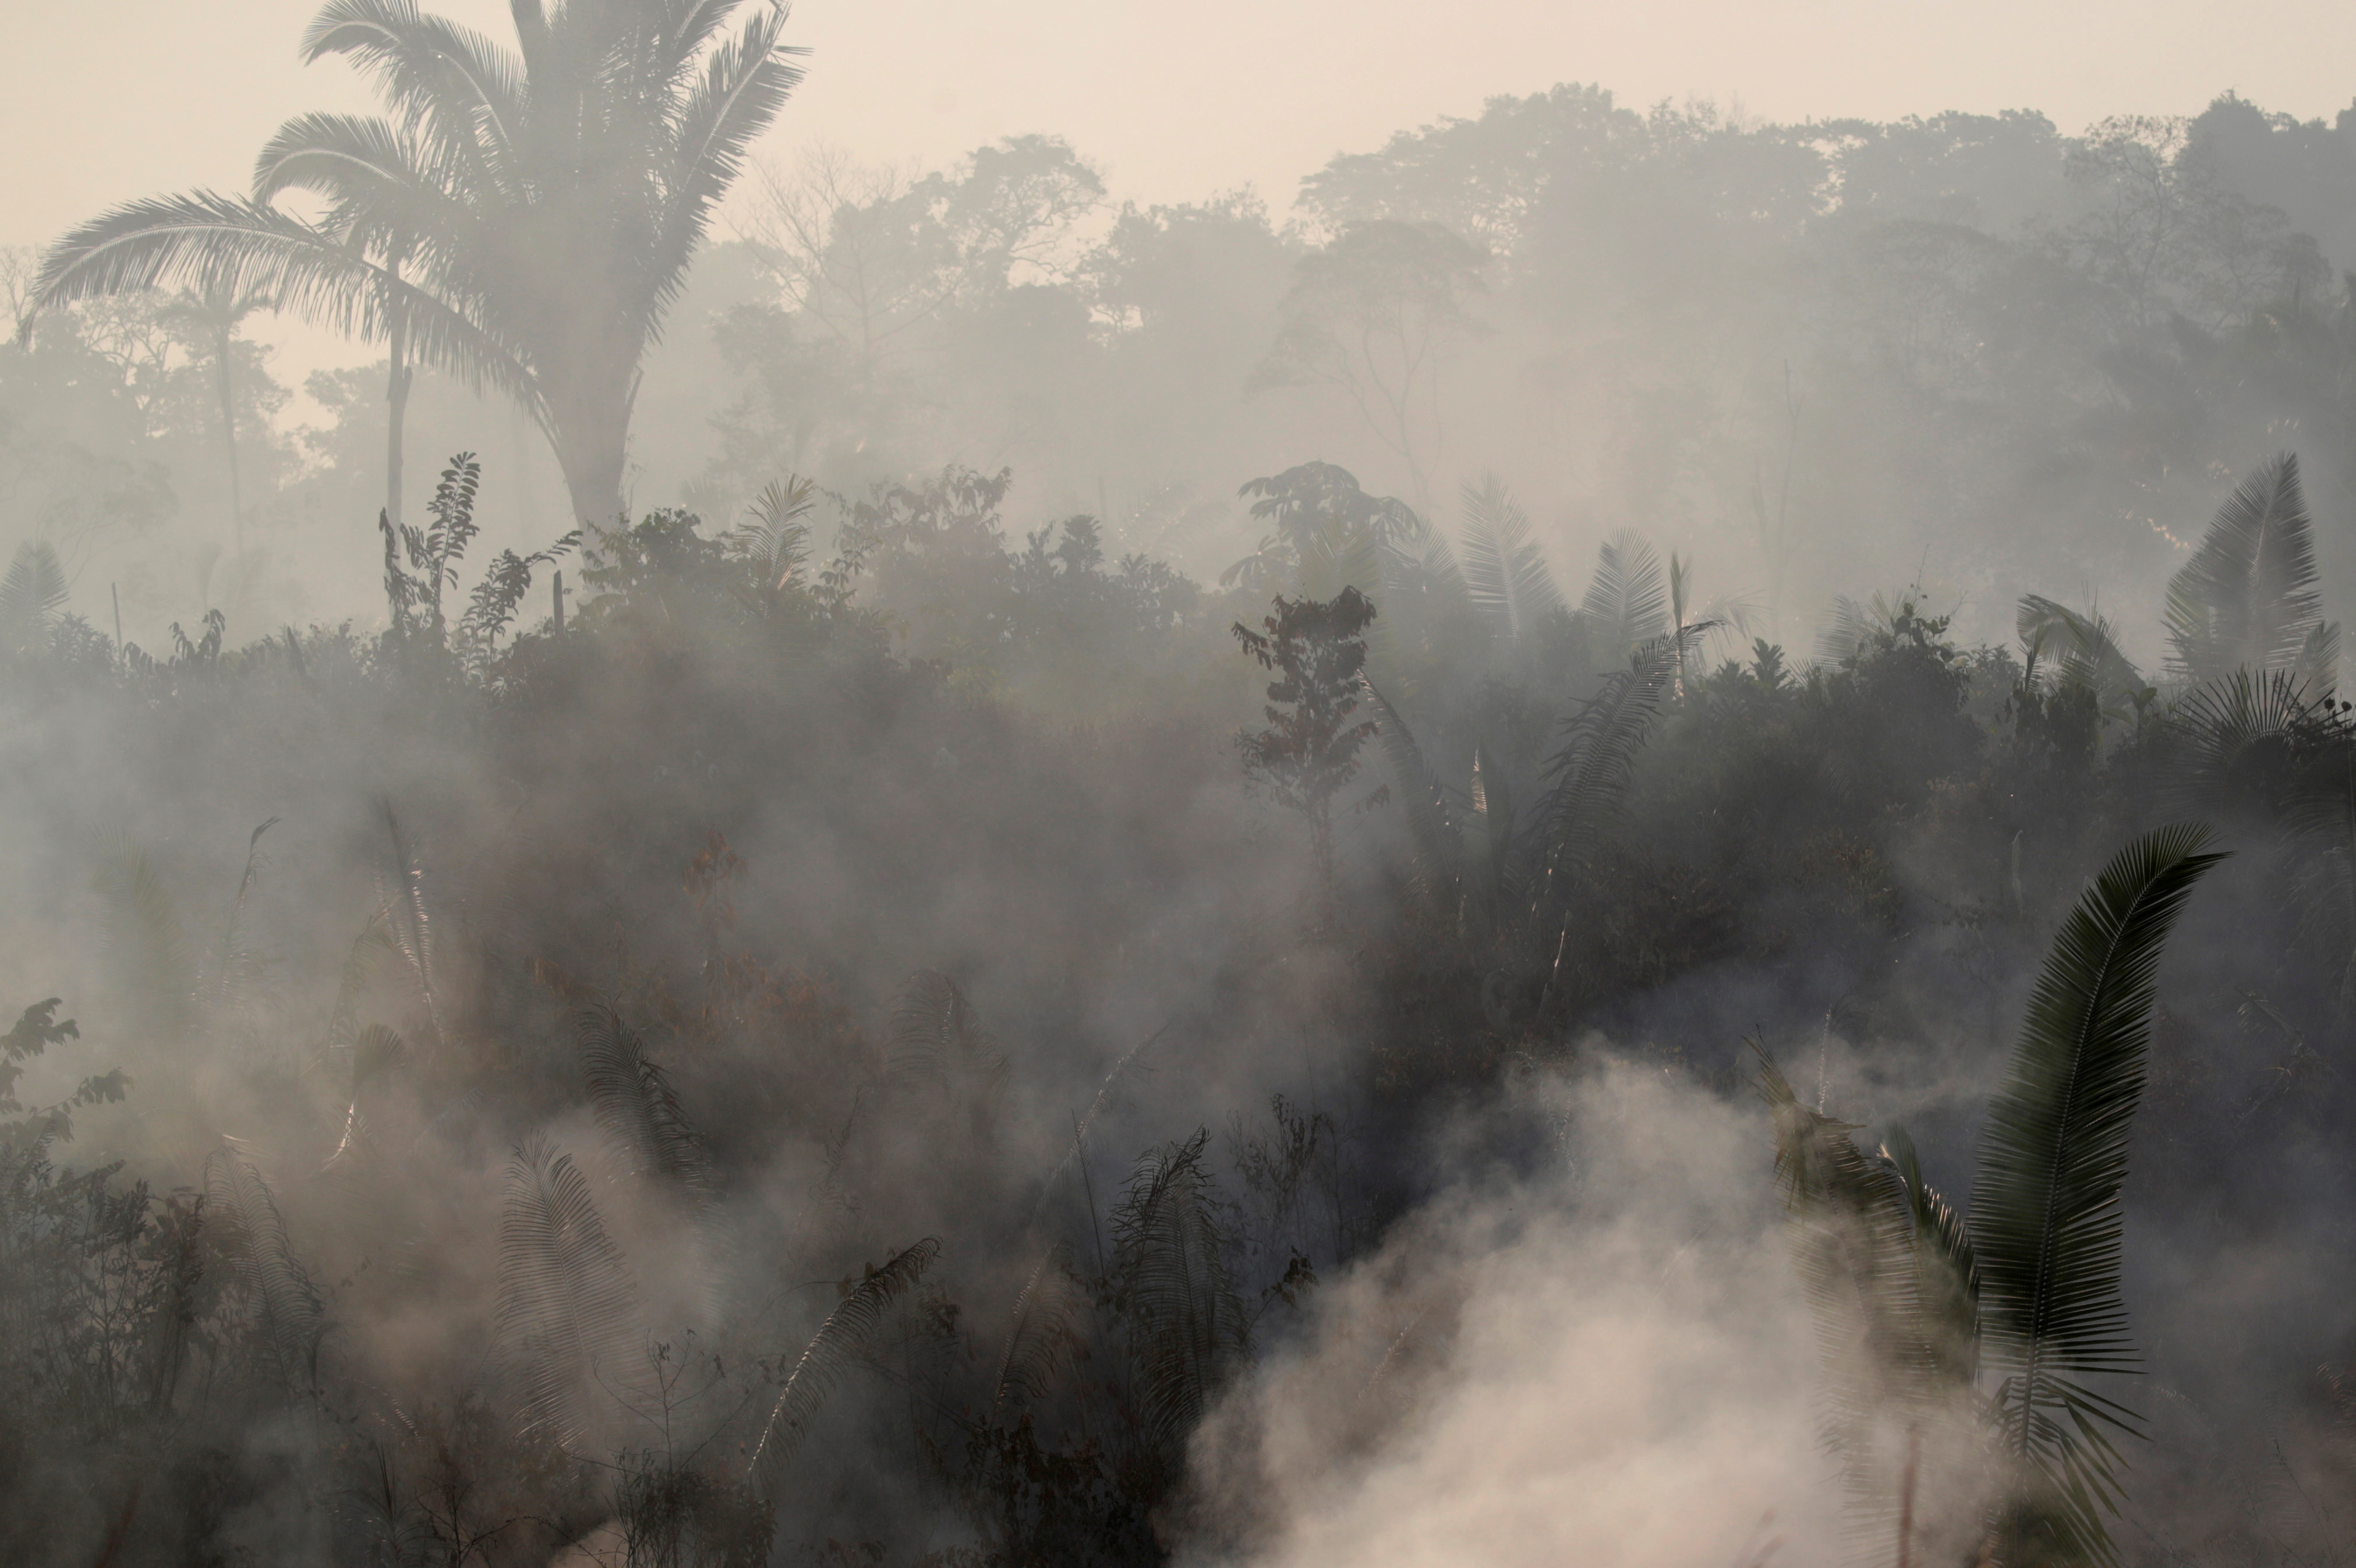 Smoke billows during a fire in an area of the Amazon rainforest near Humaita, Amazonas State, Brazil, Brazil August 14, 2019. REUTERS/Ueslei Marcelino